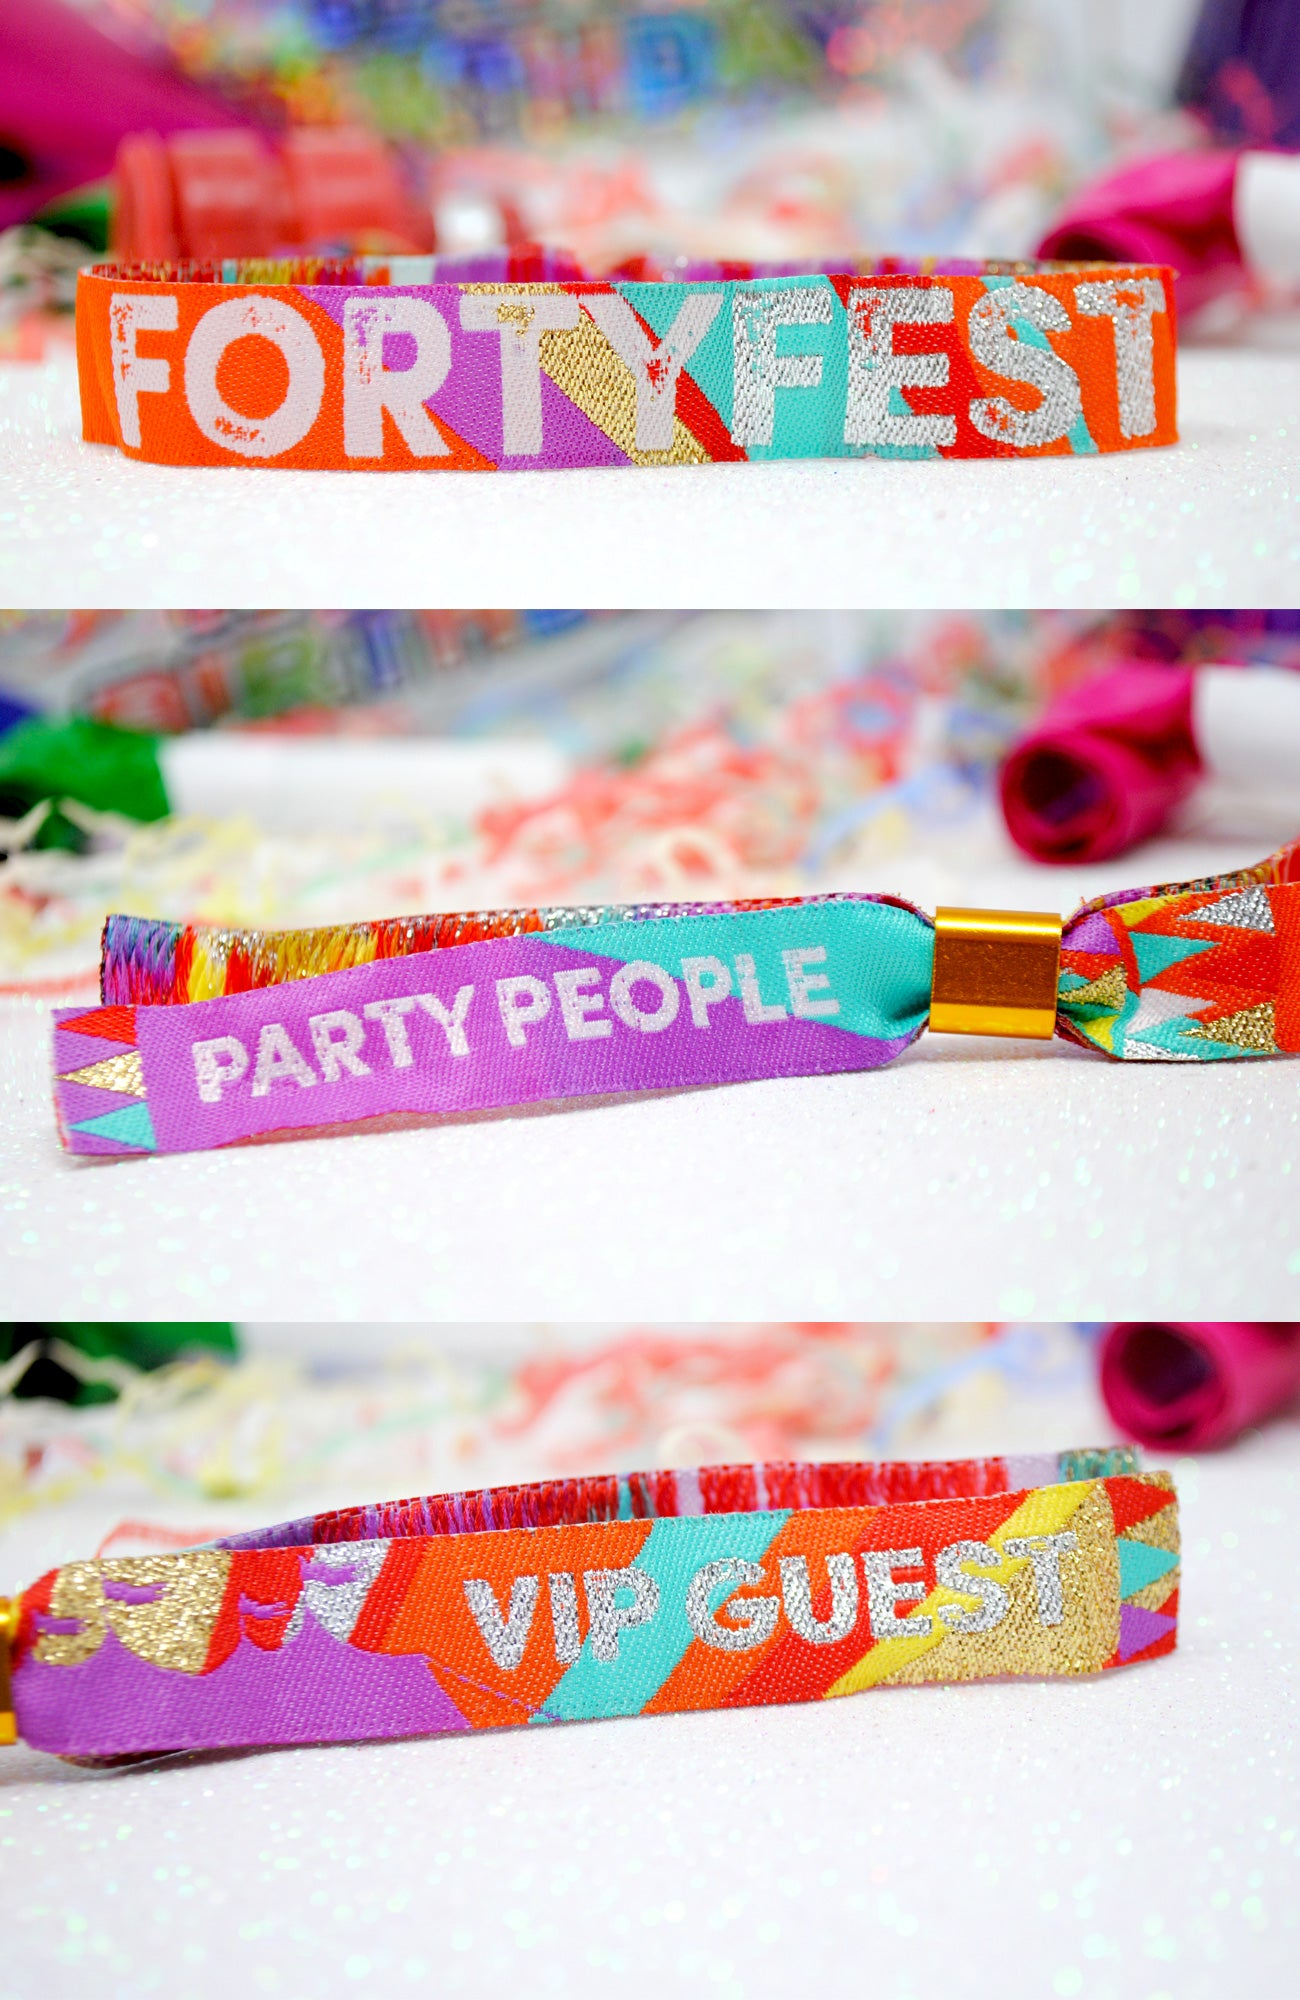 40fest forty fest 40th birthday party wristbands